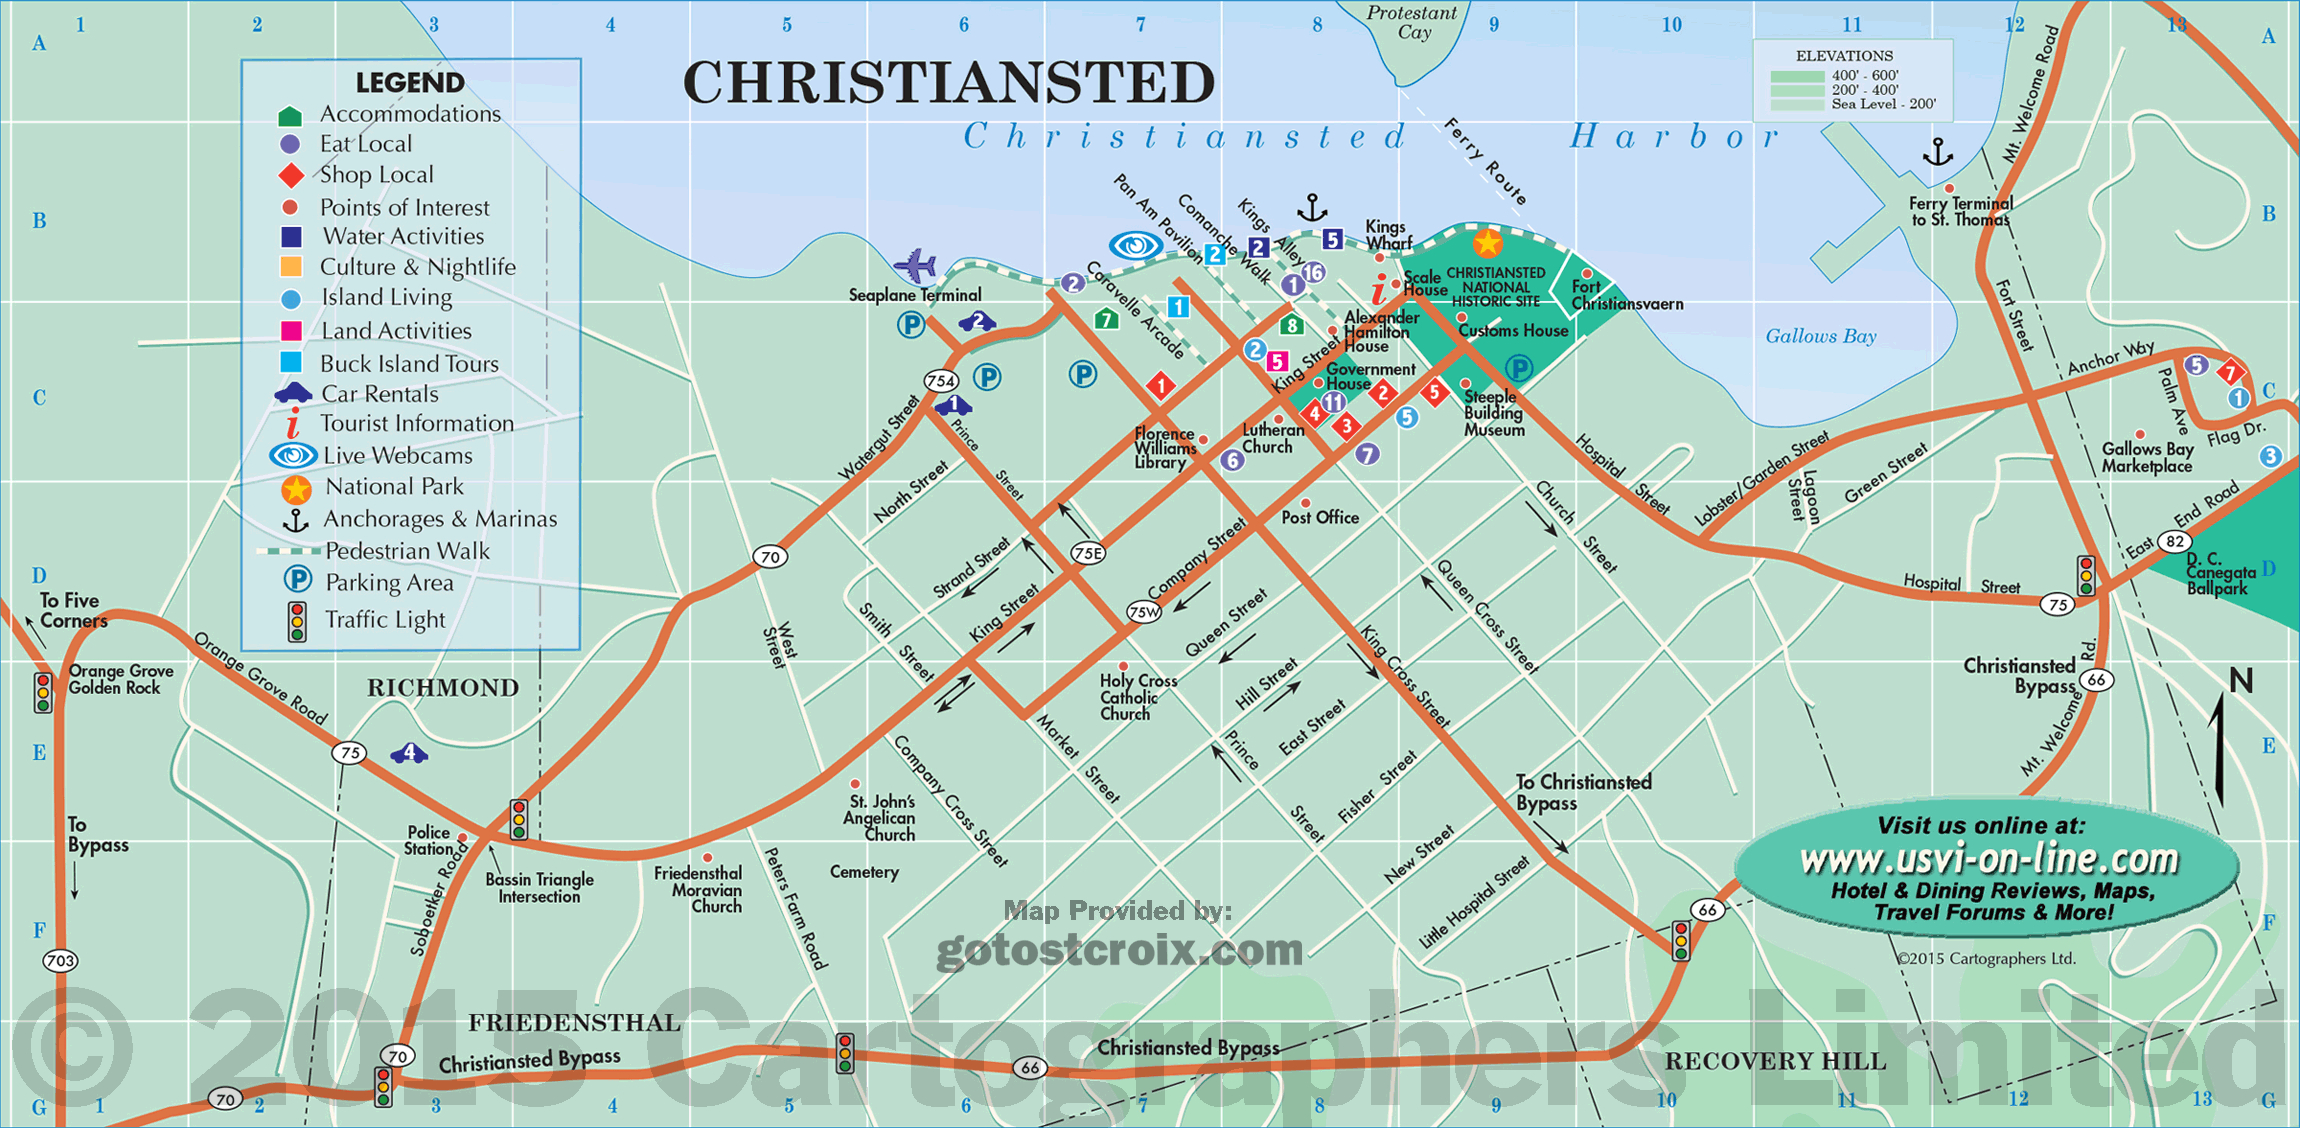 Plan Your Travel, Island Maps Of St. Croix | Gotostcroix - Printable Map Of St Croix